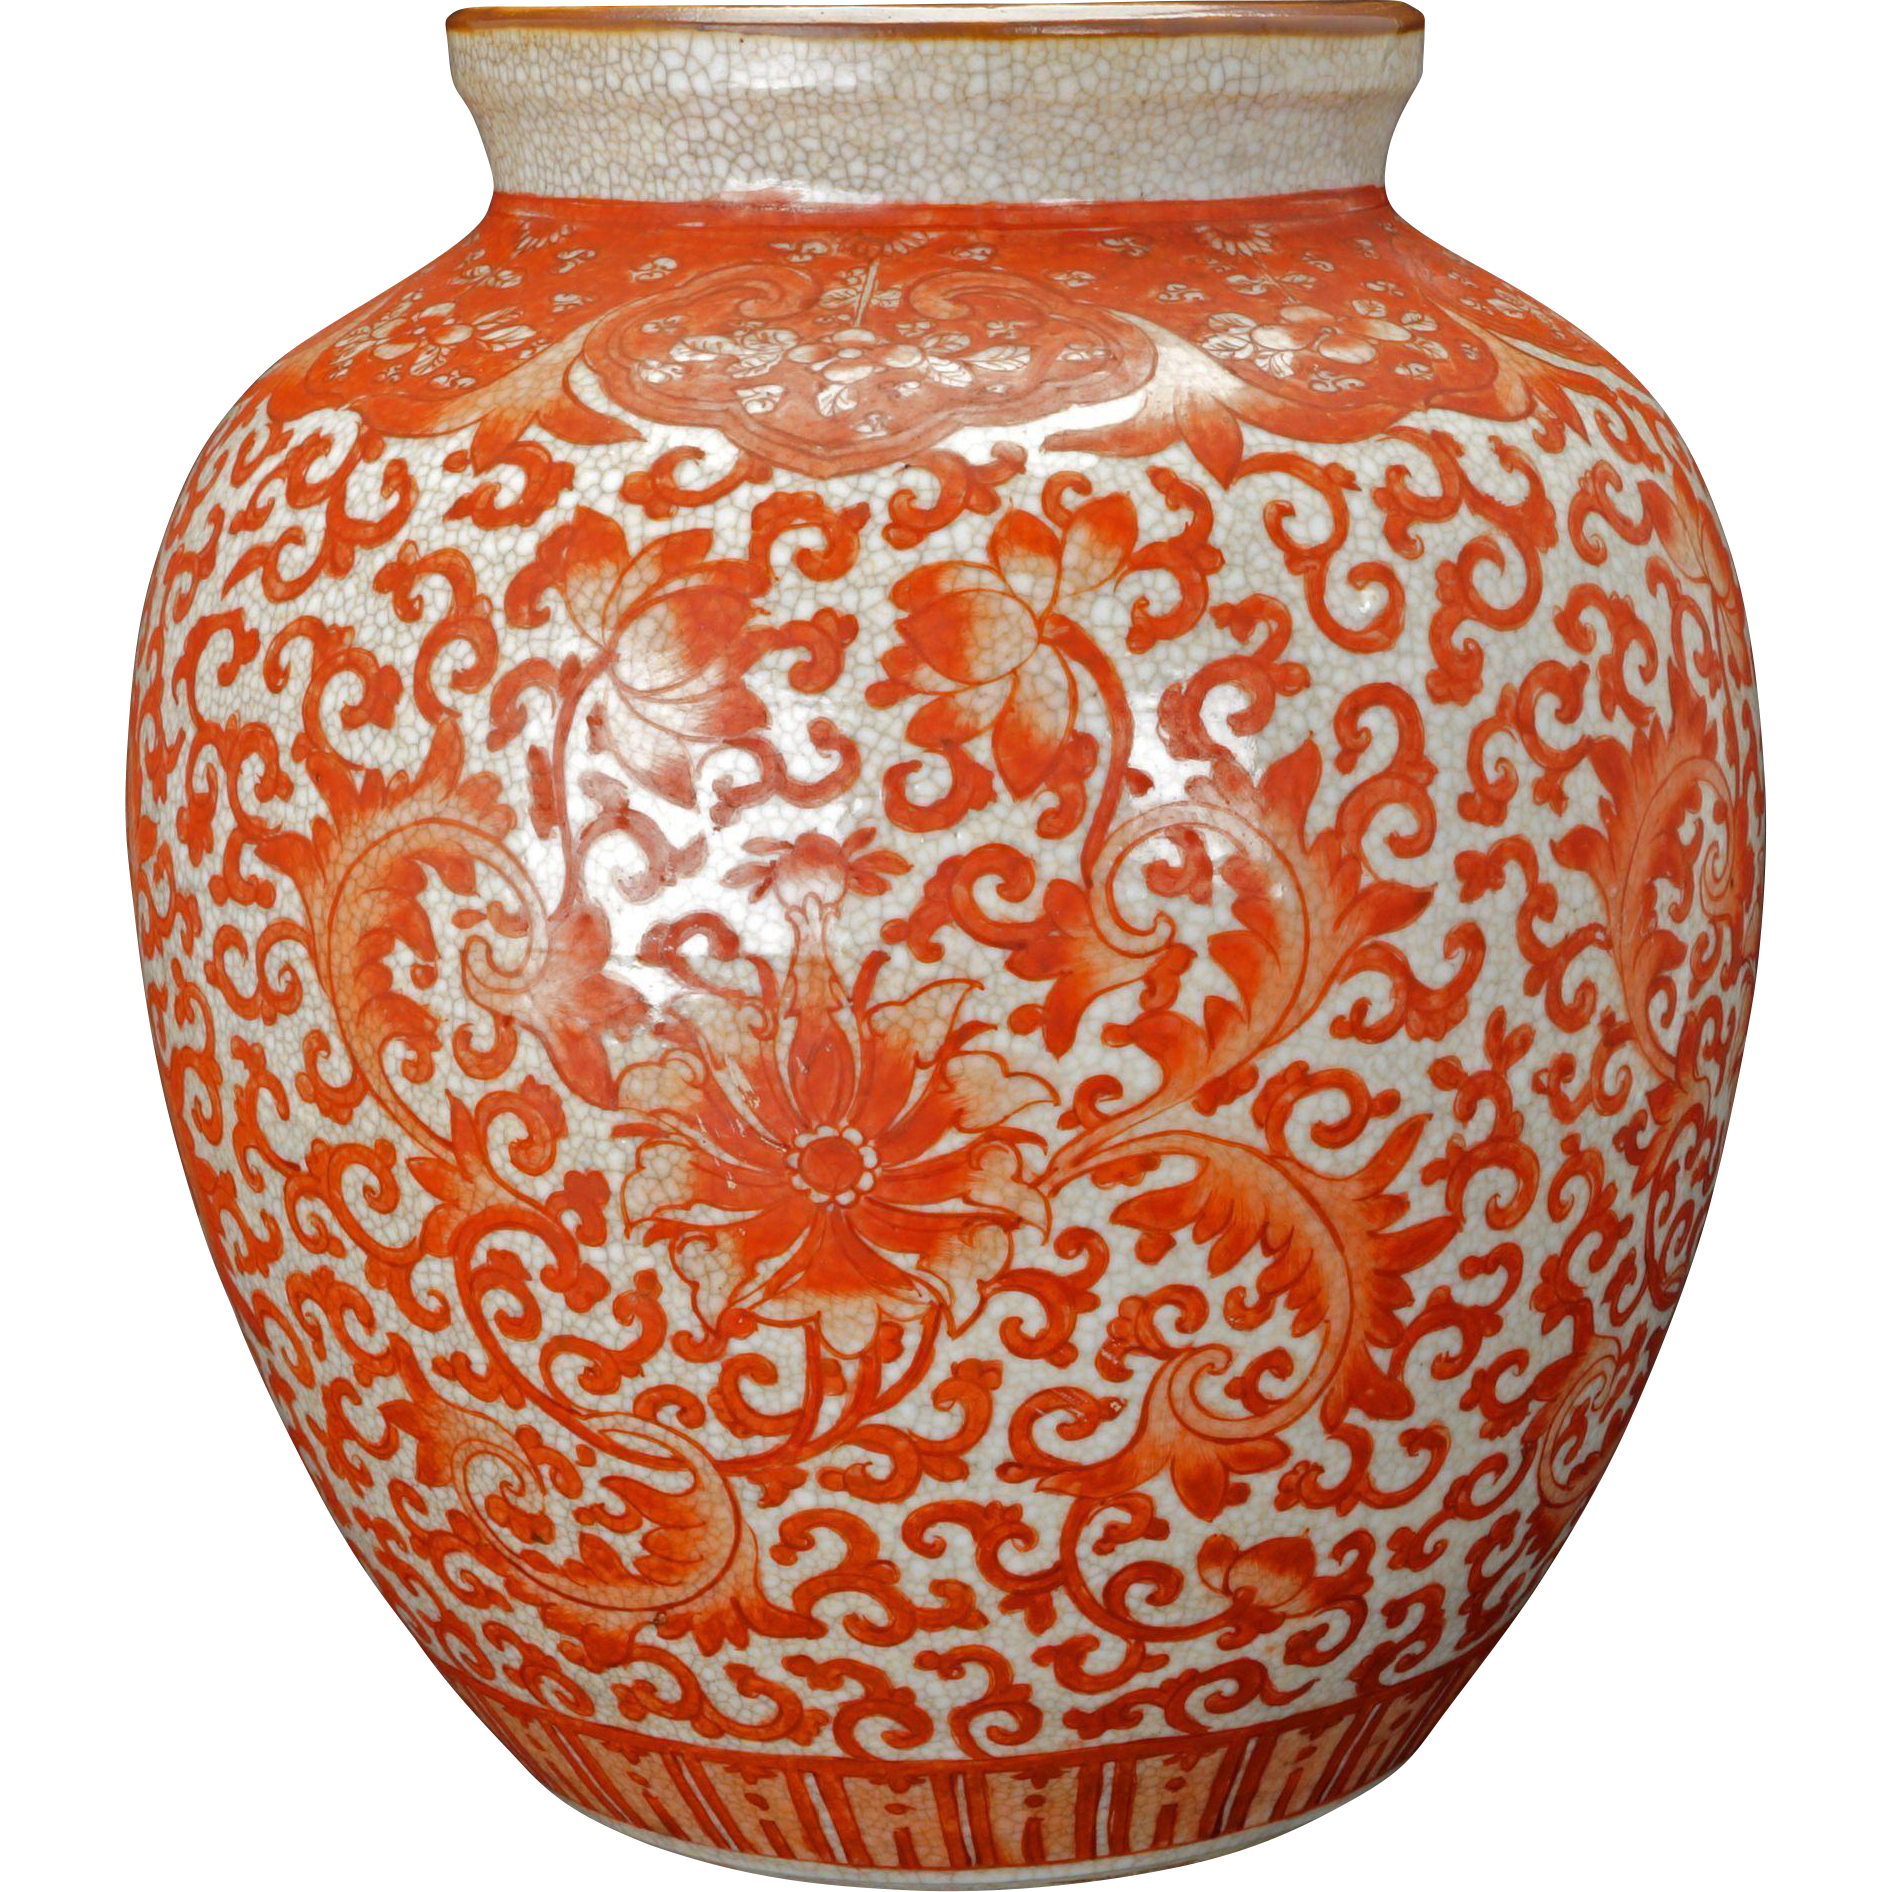 Chinese Porcelain Vase With Copper Red Lotus Scrolling On Oatmeal Crackle Glaze Body Early 20th Century Porcelain Painting Vase Chinese Porcelain